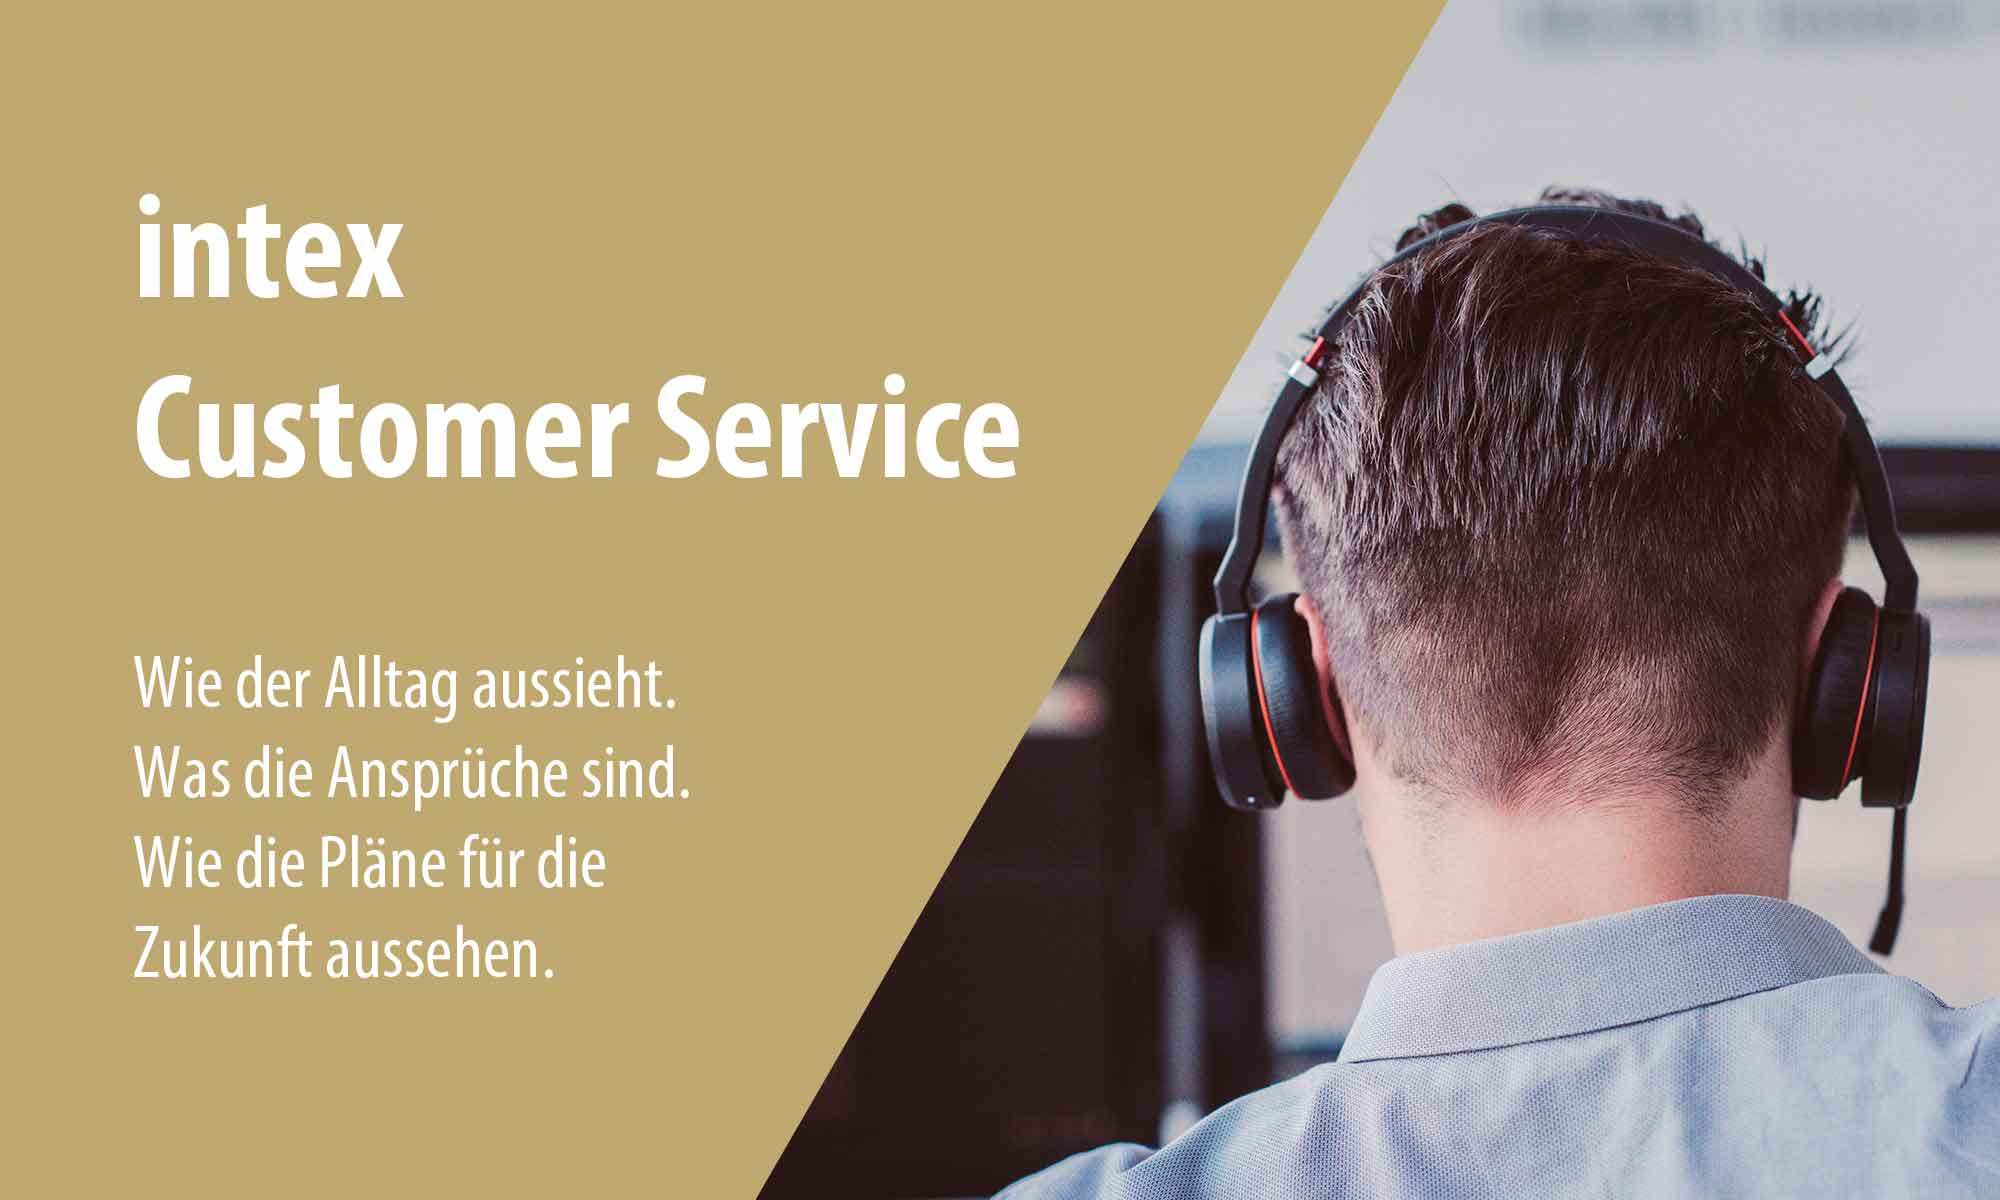 intex Customer Service Vorstellung